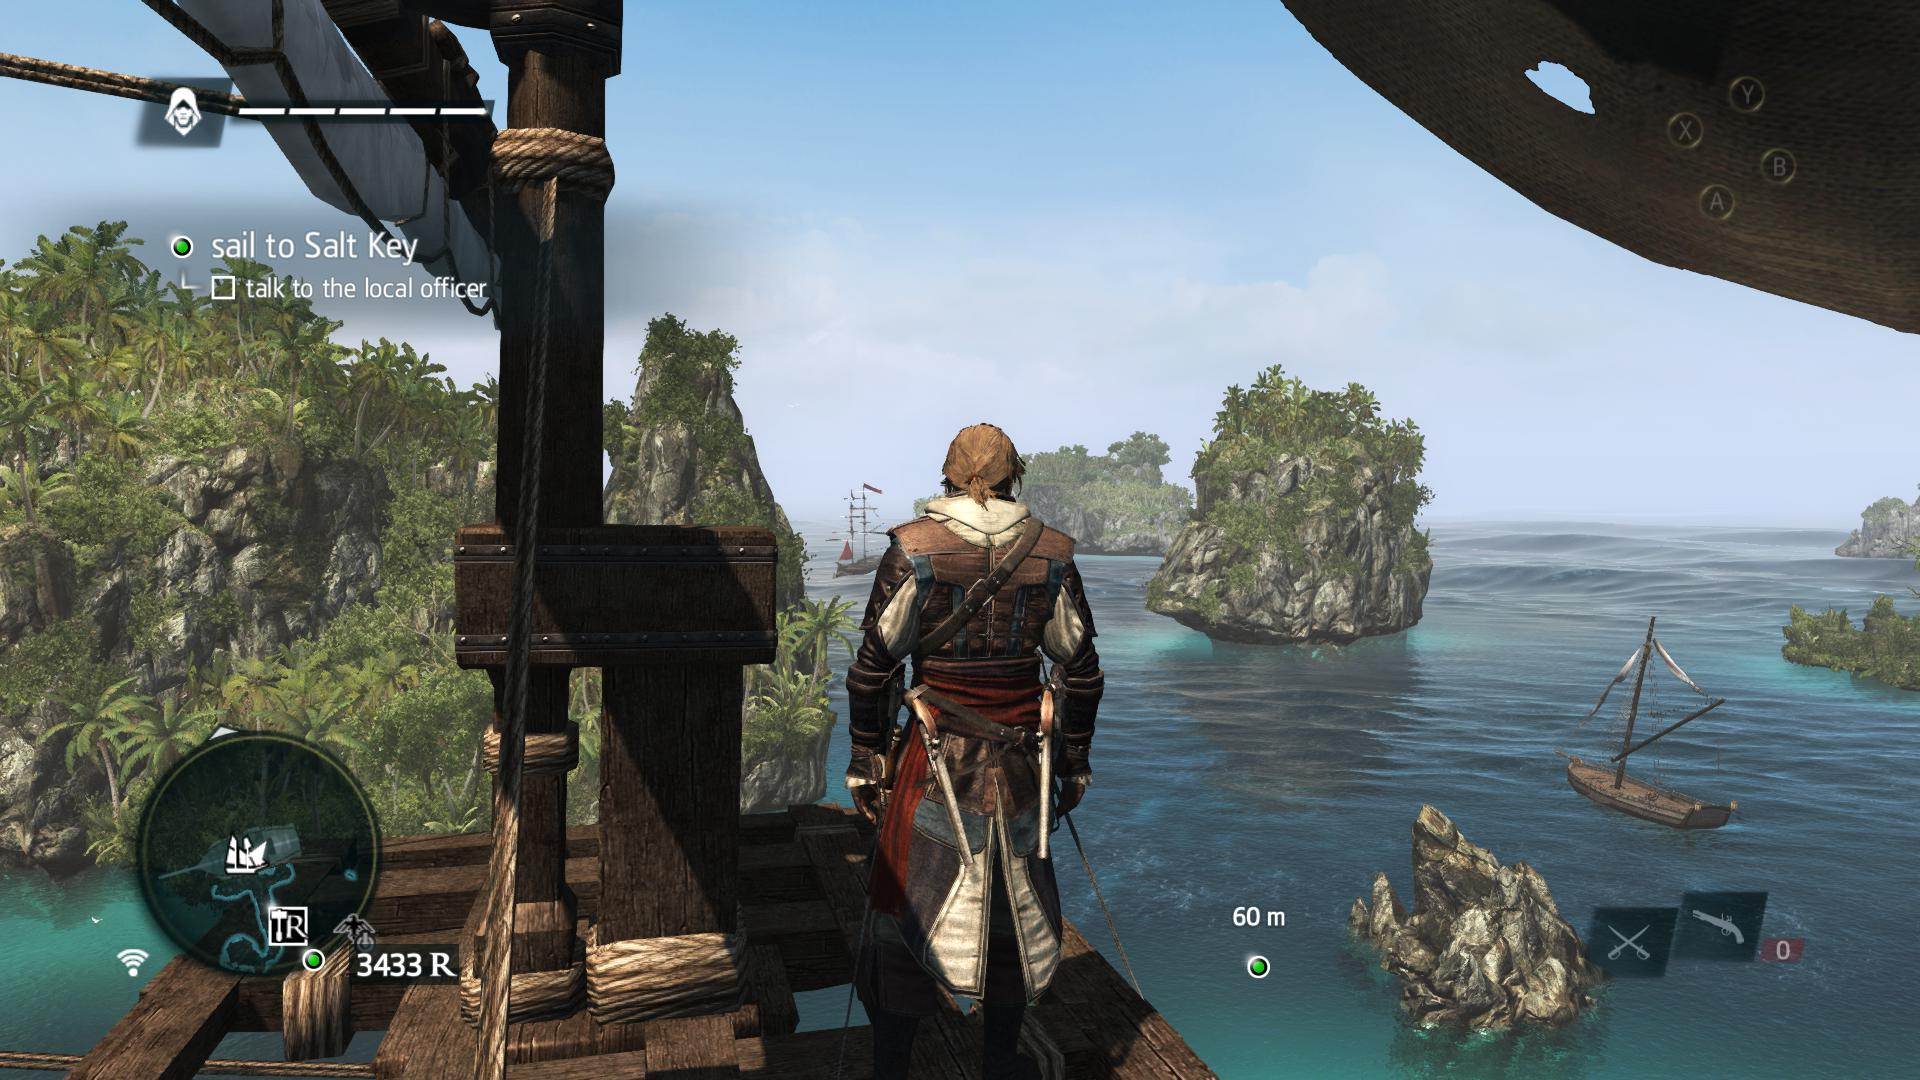 assassins creed 4 uplay activation code free